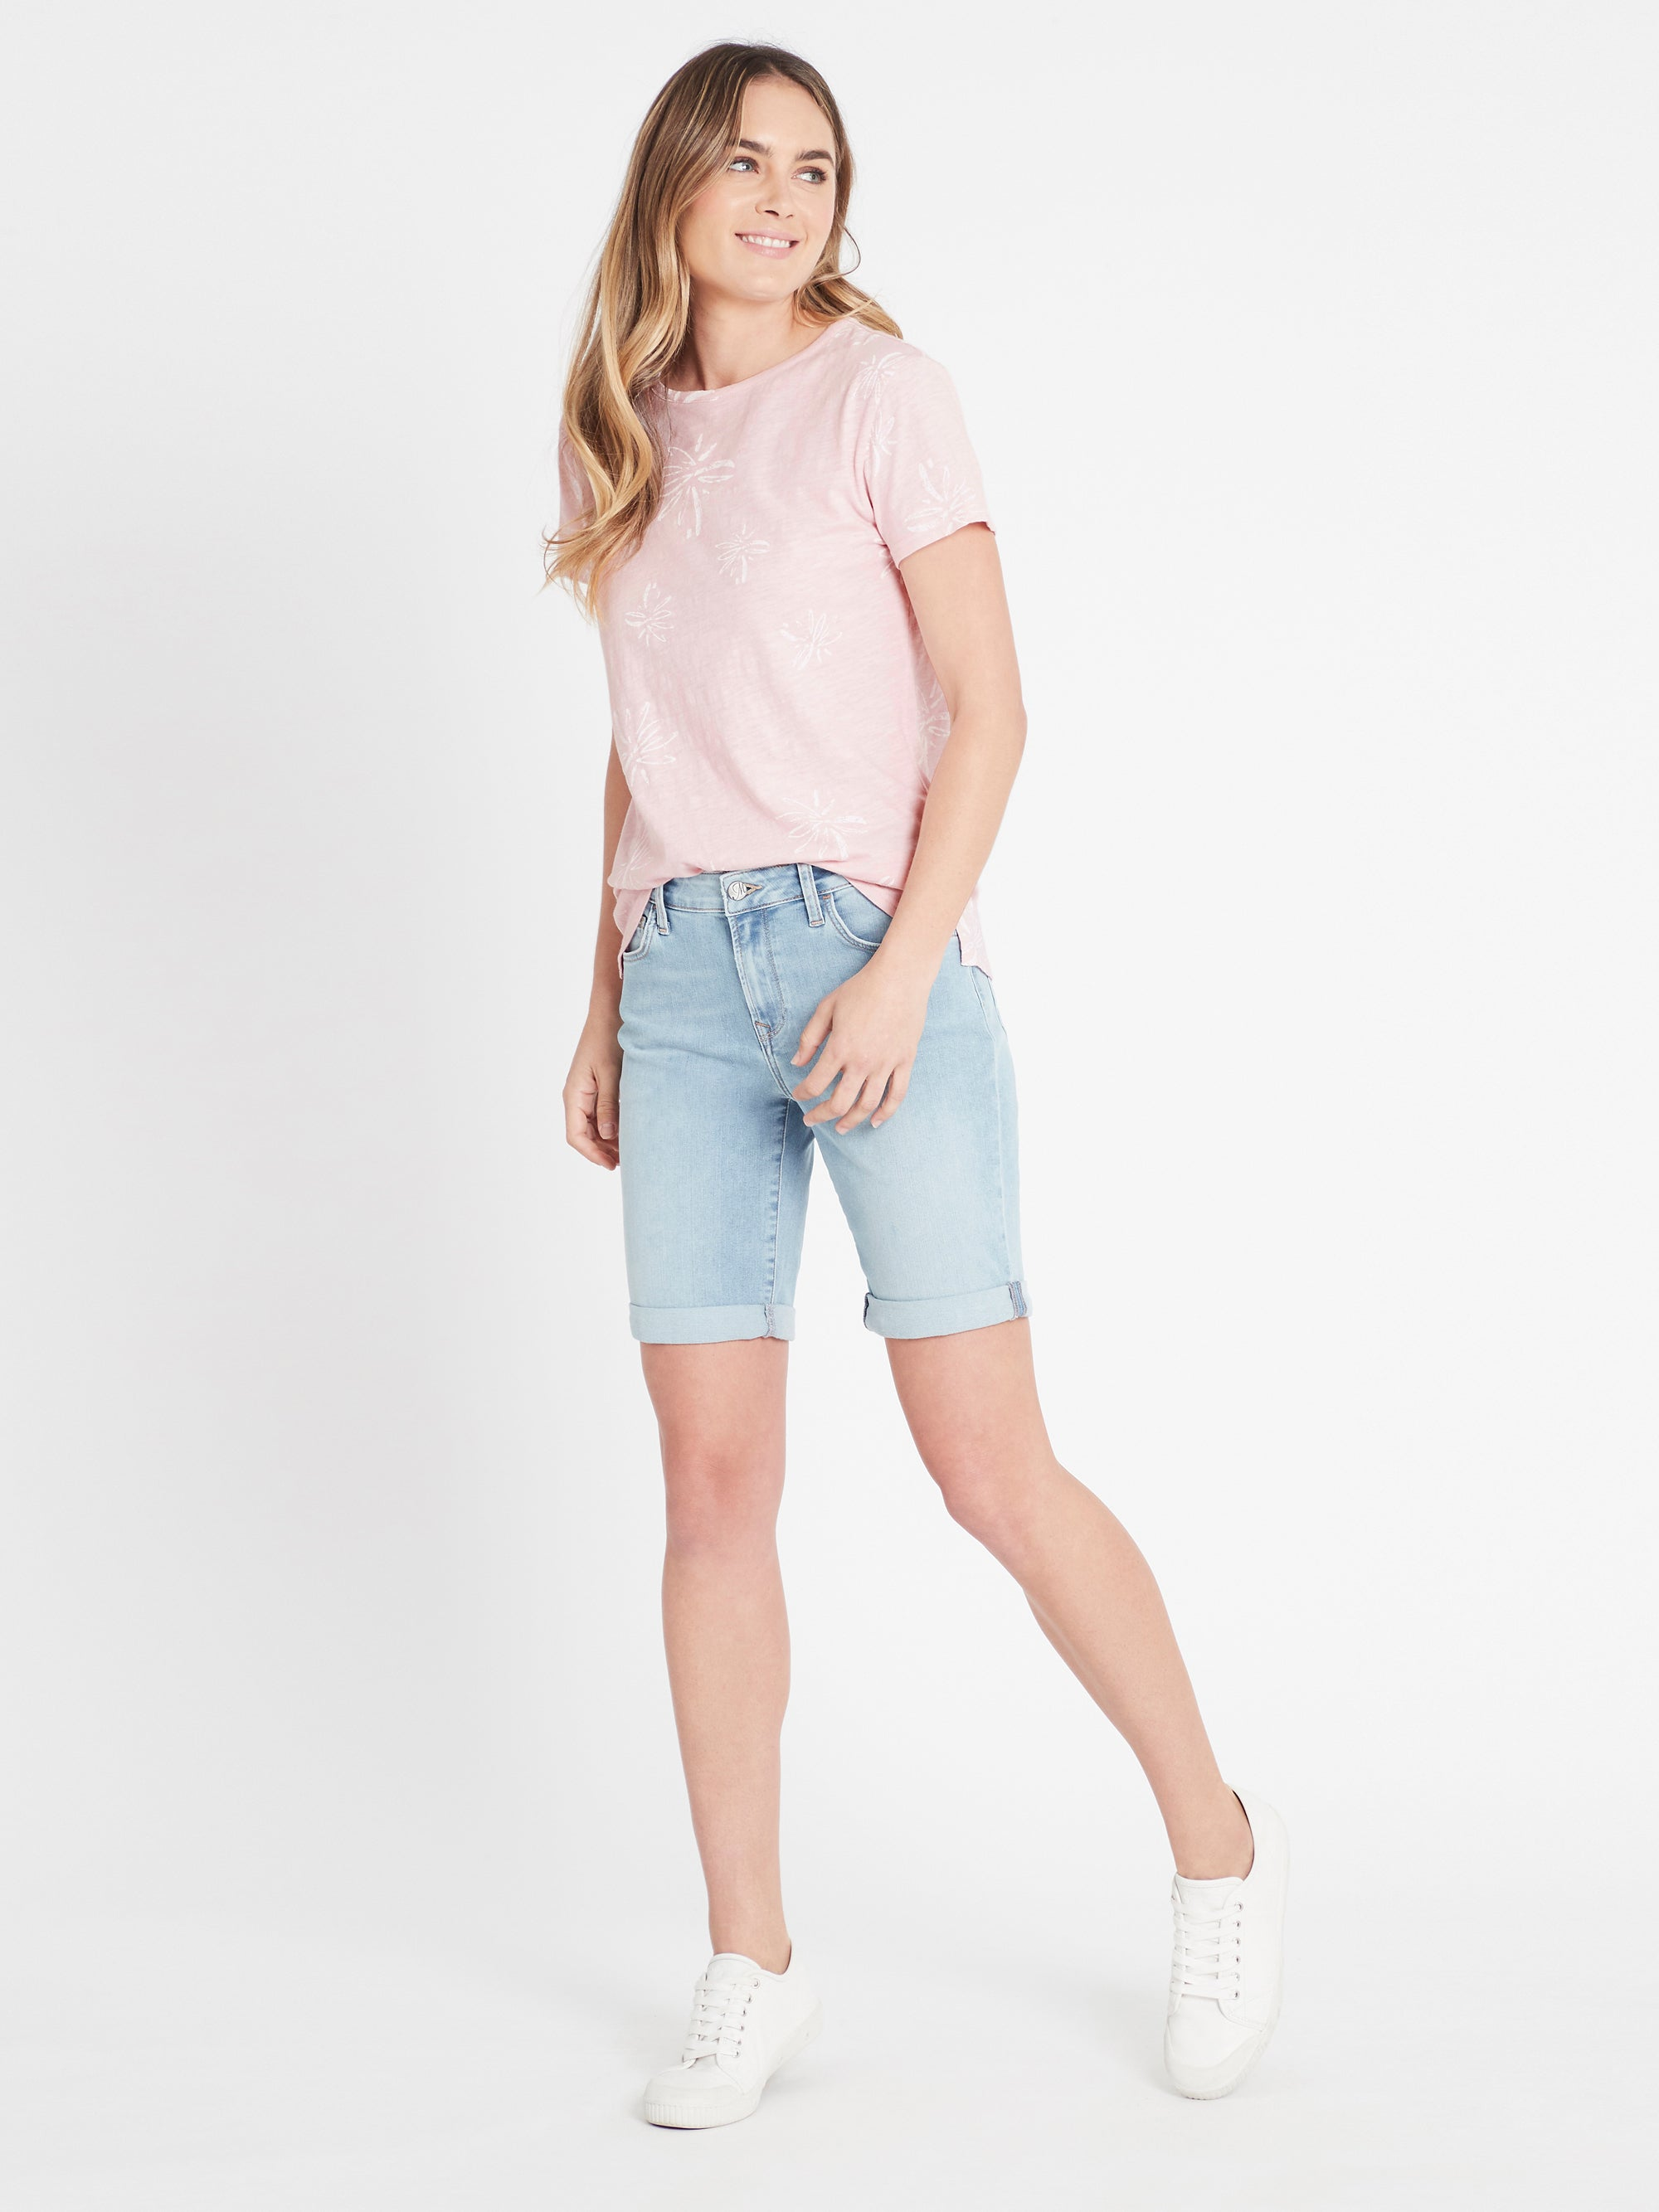 Alexis Bermuda Short in Light Blue Vintage Stretch